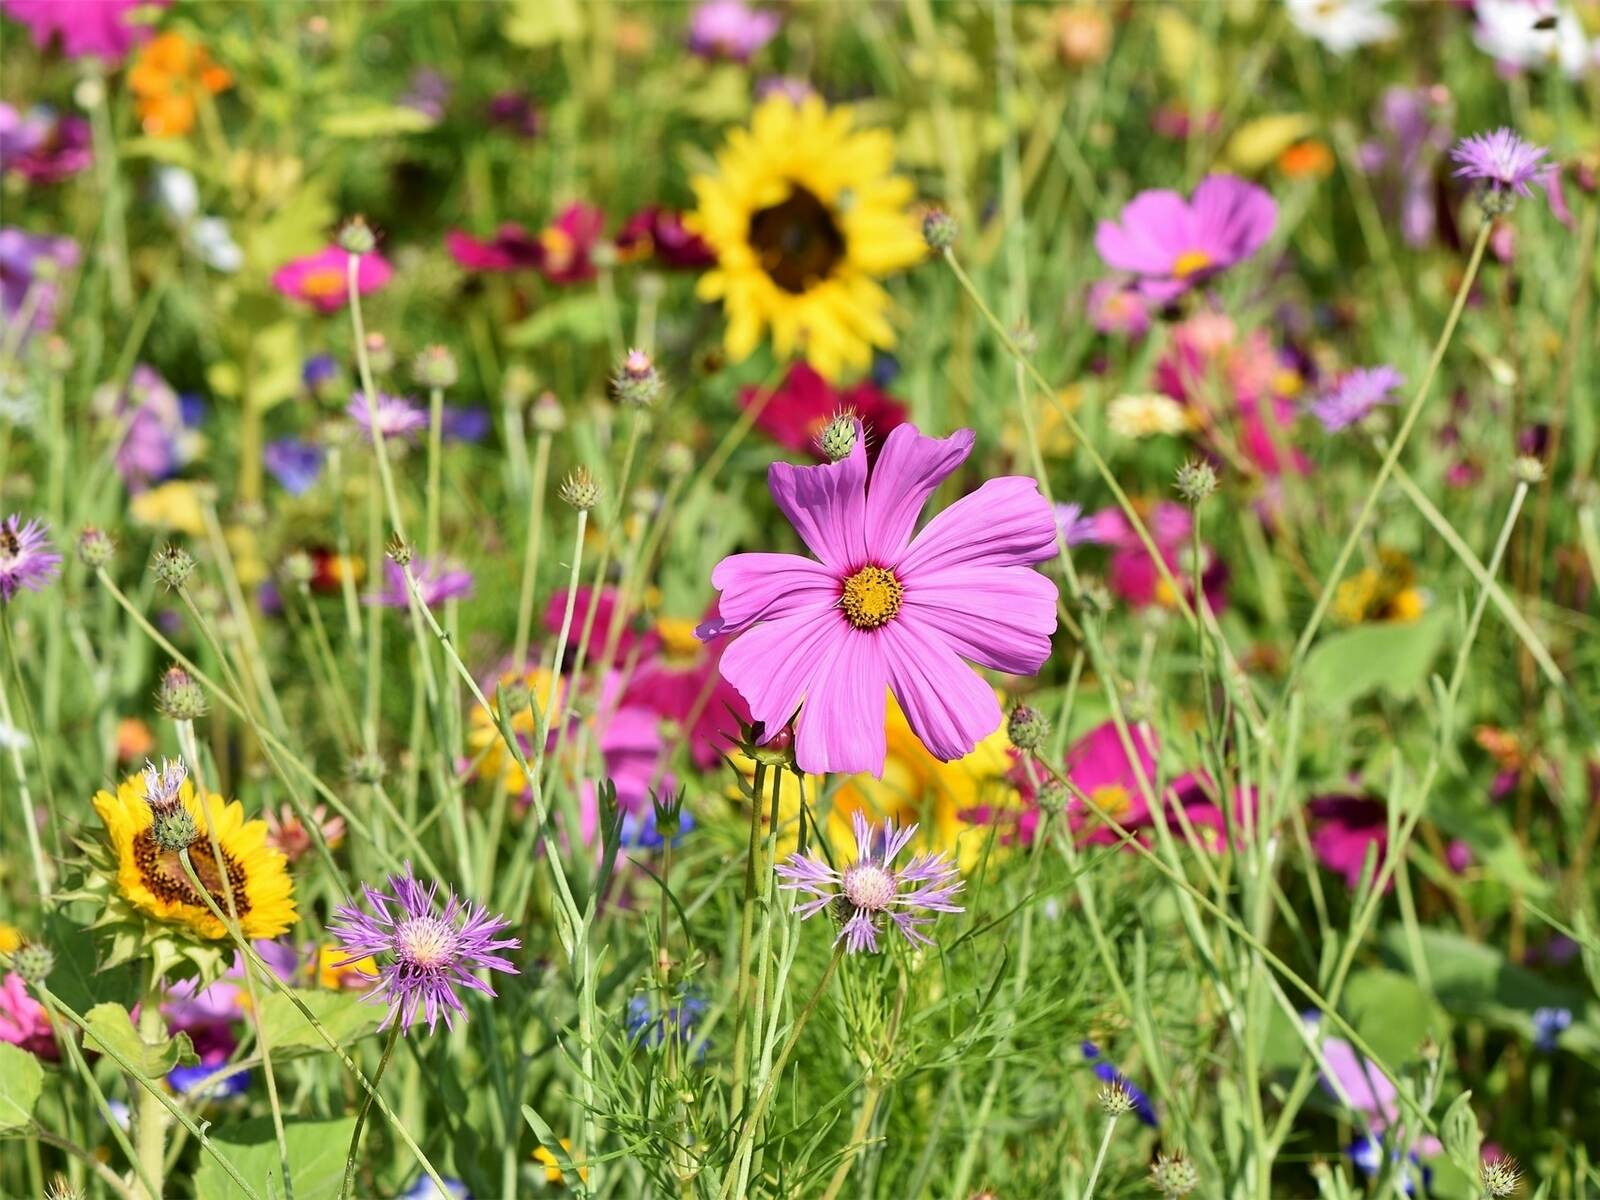 760_0900_99534_flower_meadow_3598561_1920.jpg